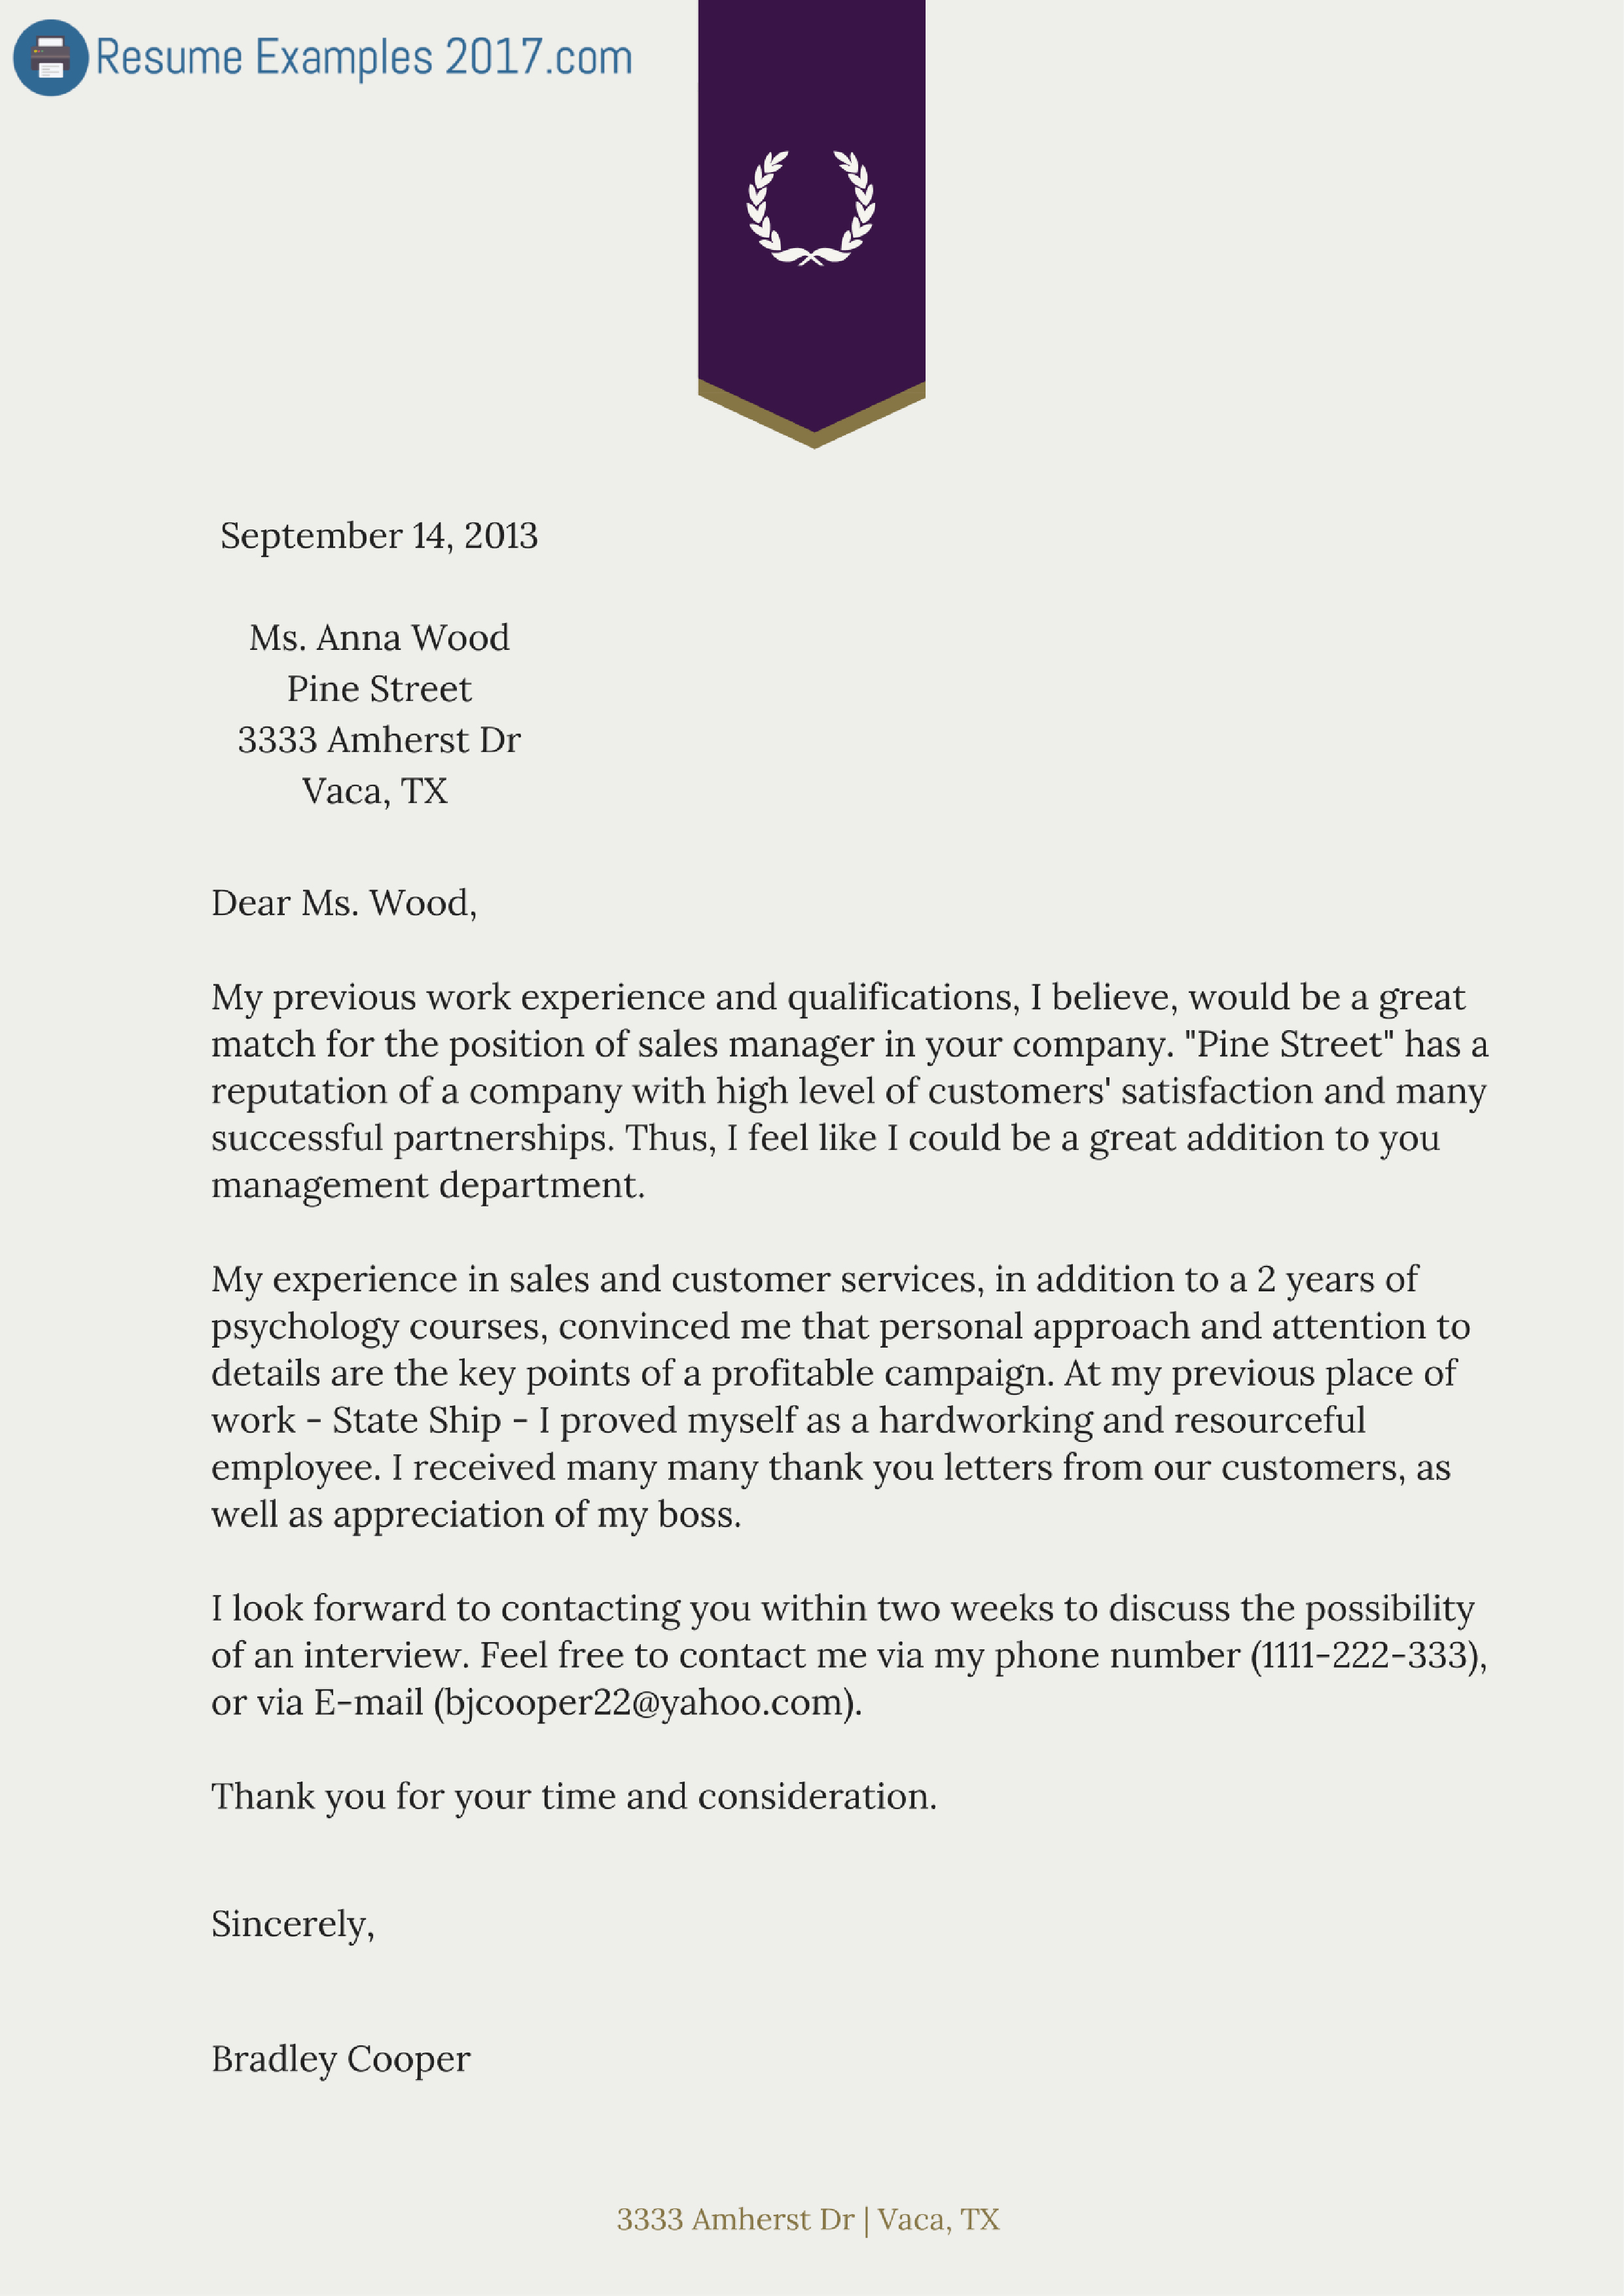 Free Cover Letters for Resumes Best Of Download Cover Letter Samples